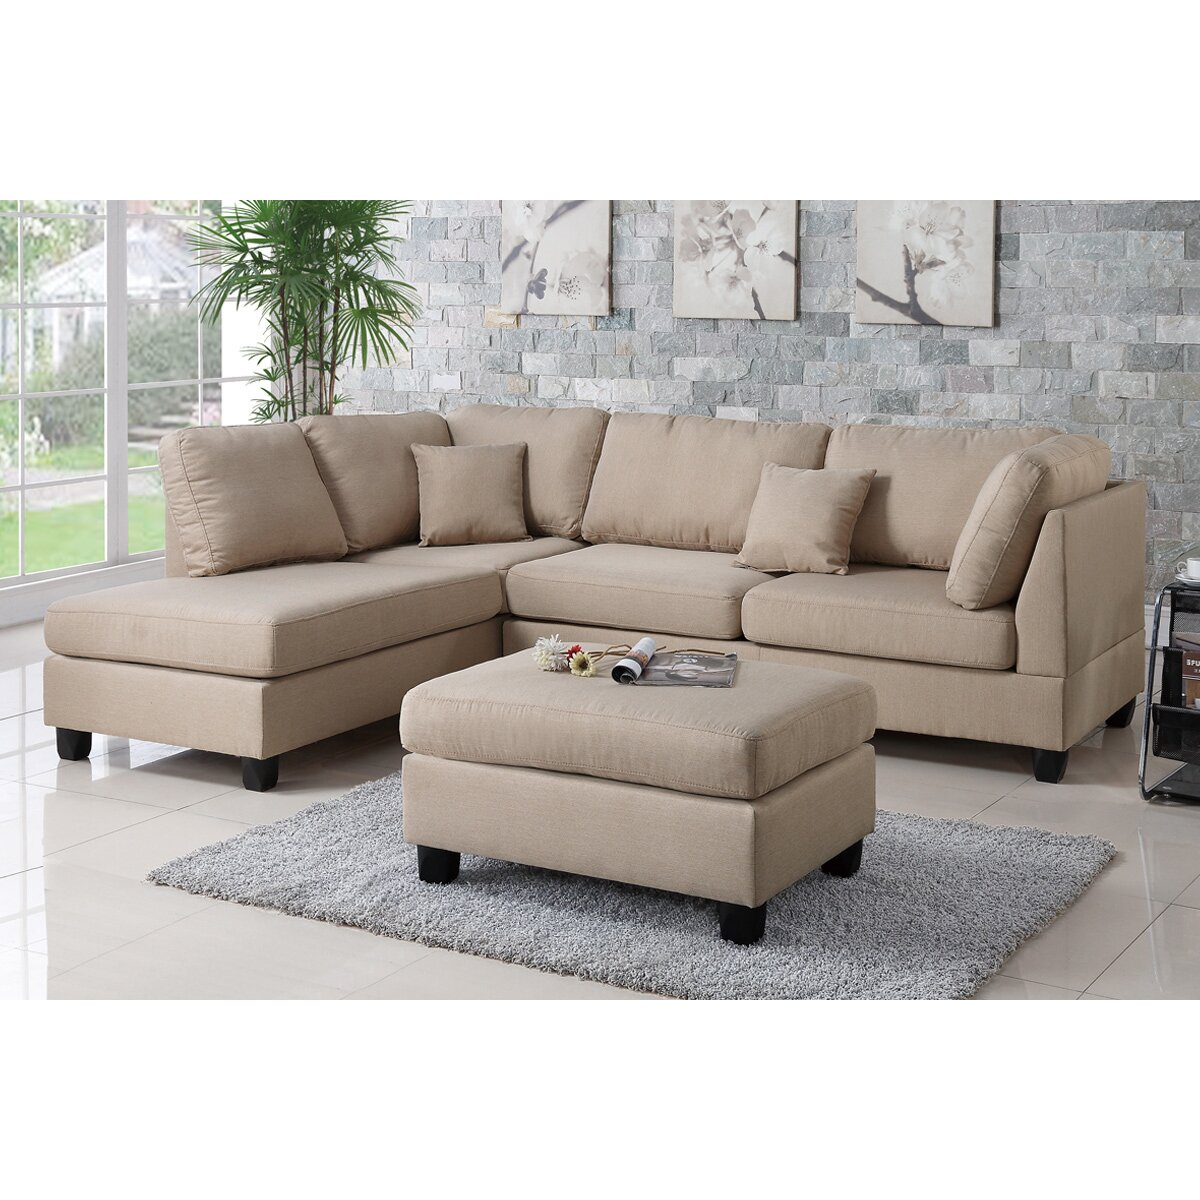 Poundex Sectional White Leather Sofa Chaise: Poundex Bobkona Dervon Reversible Chaise Sectional